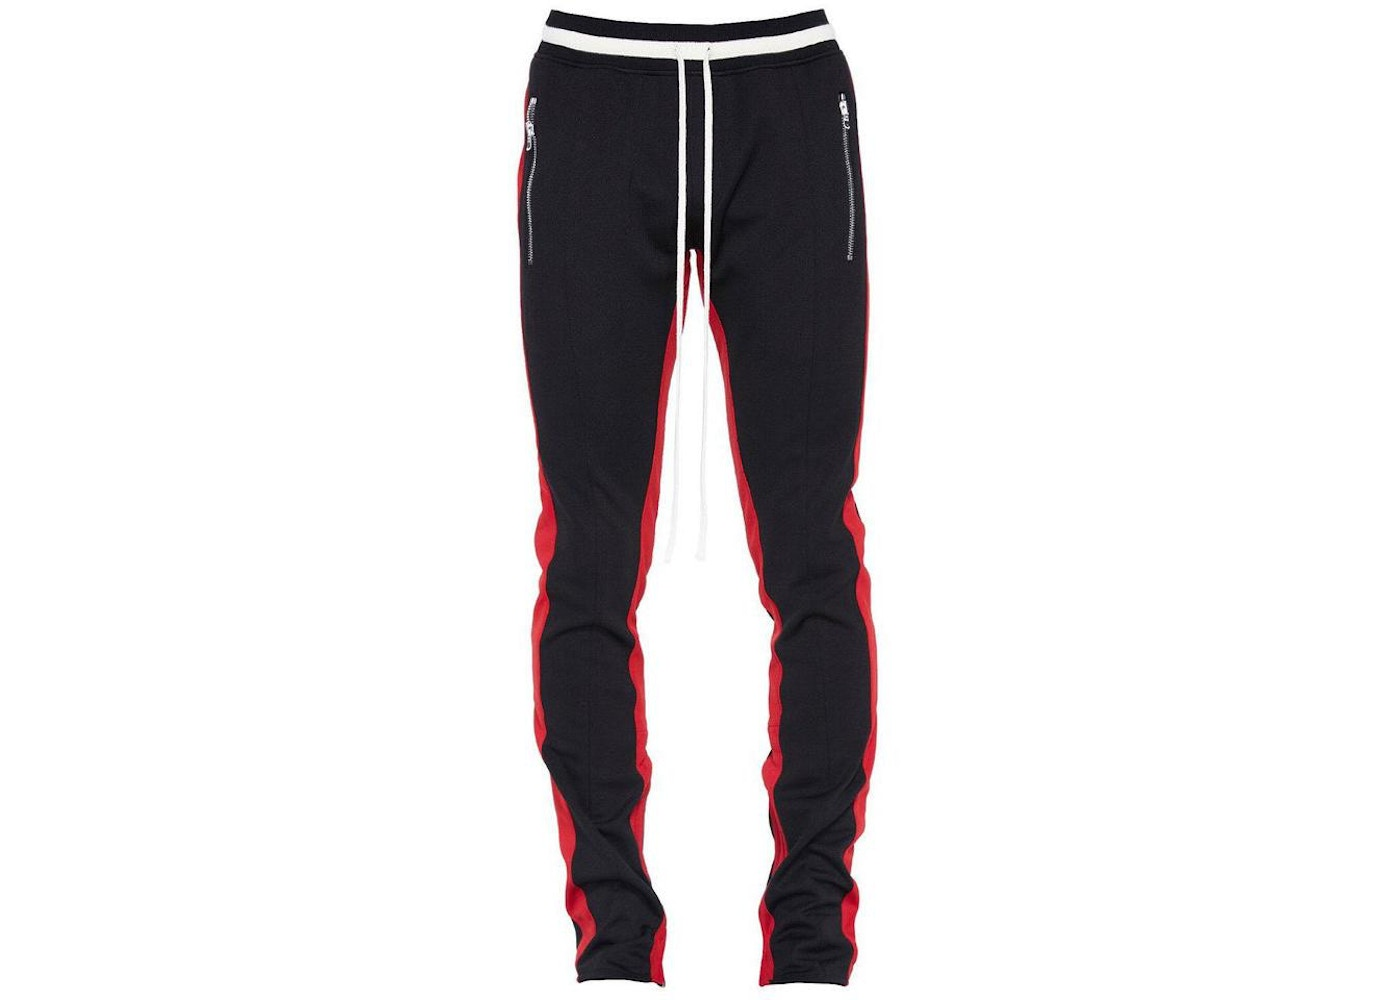 05c1b0bc325a02 FEAR OF GOD Double Stripe Track Pants Black/Red Stripe - Fifth ...